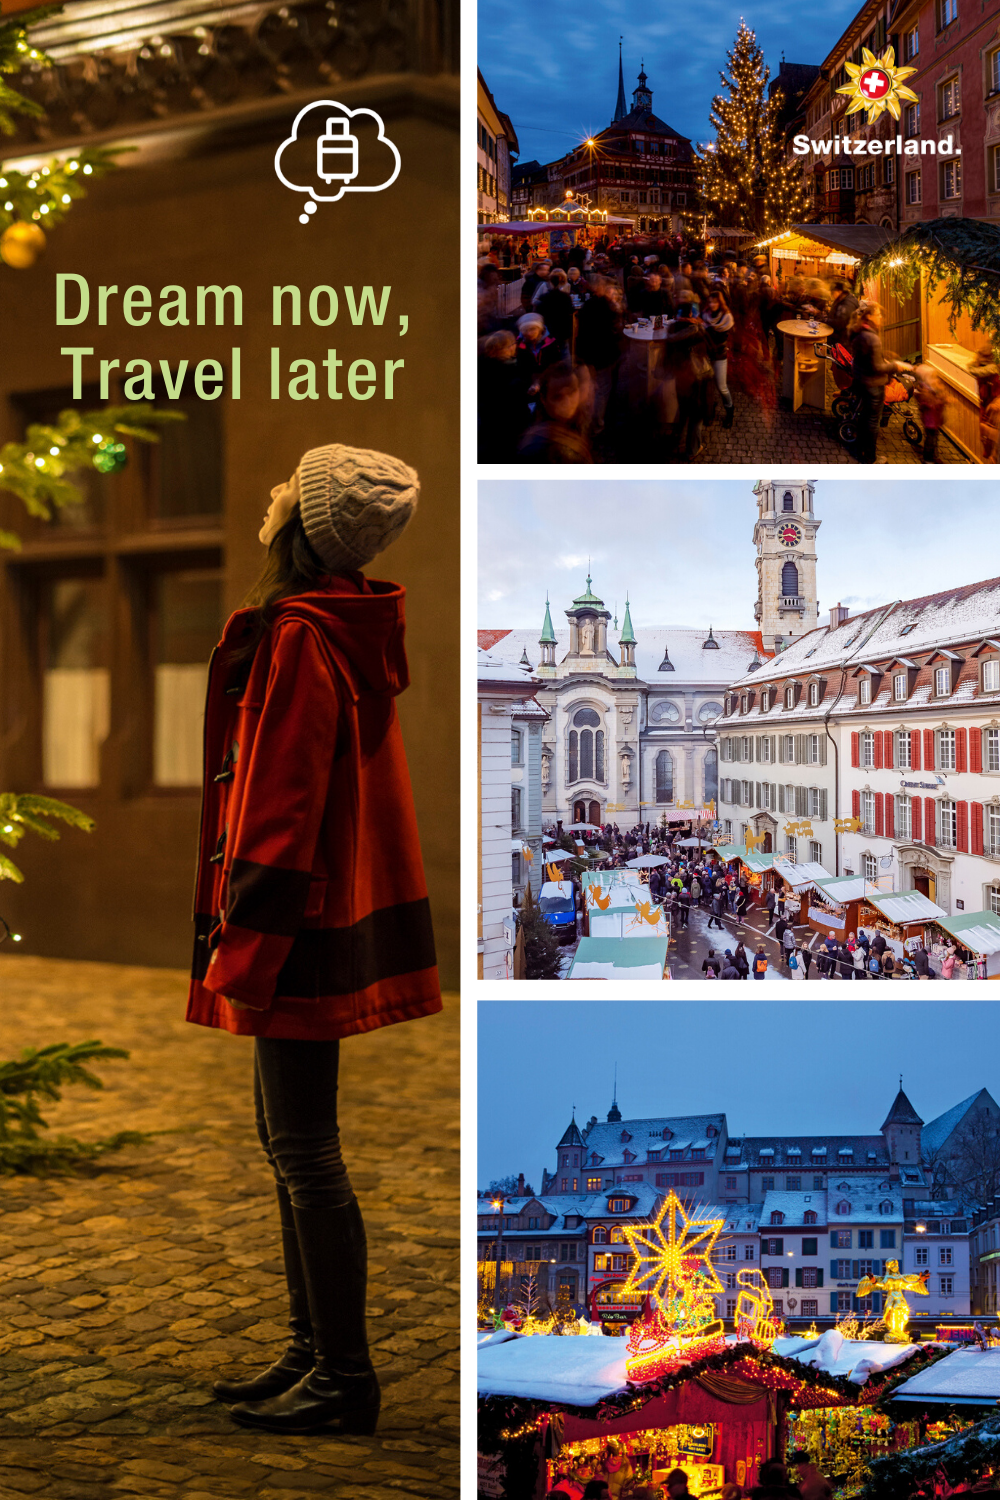 Stein Am Rhein Christmas Market 2020 The Christmas you have always dreamed of in Switzerland in 2020